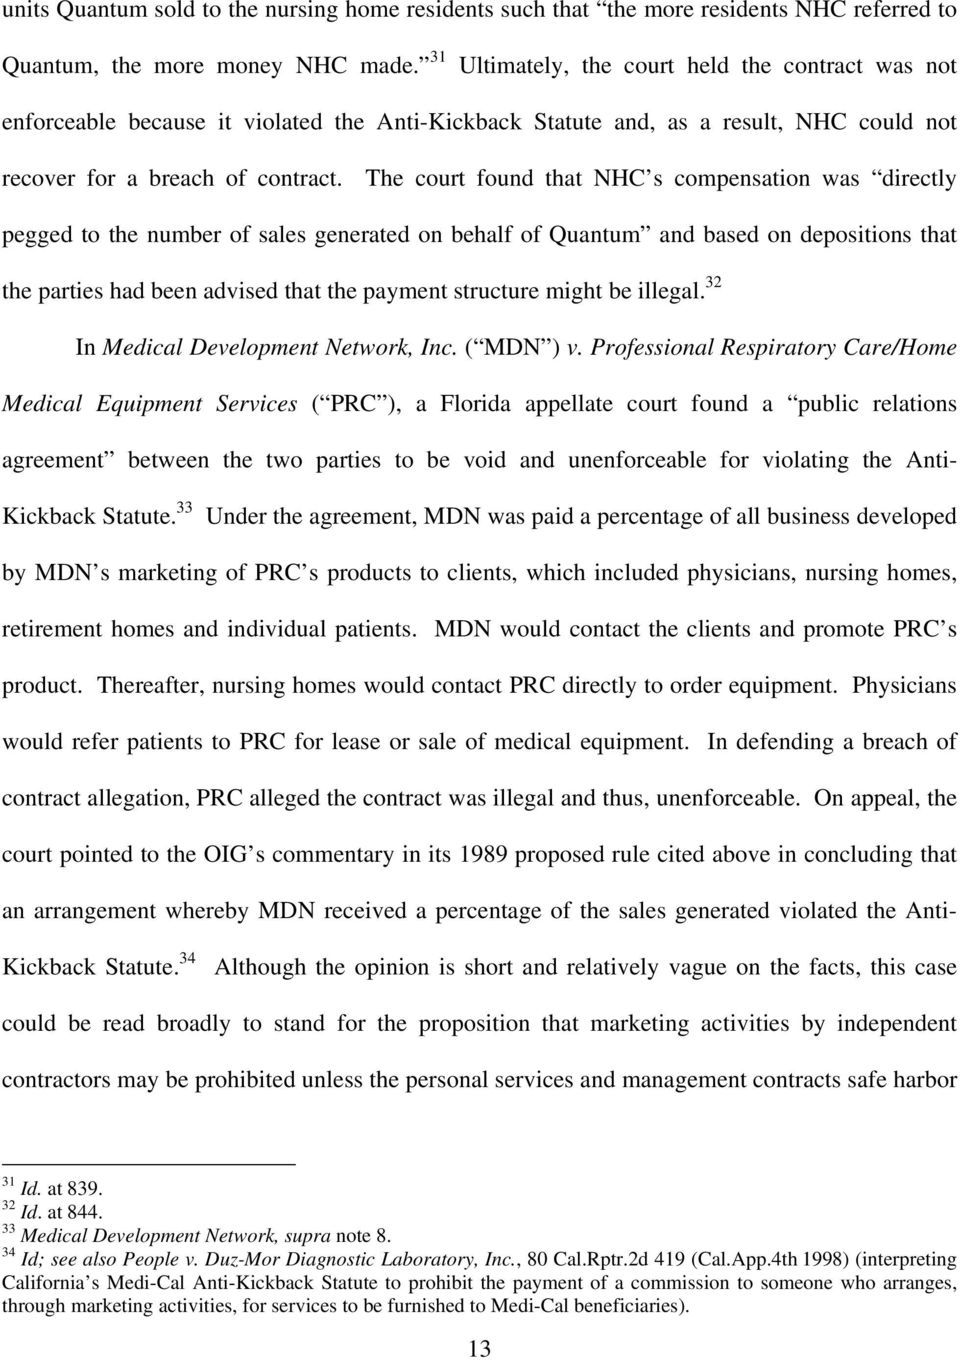 The court found that NHC s compensation was directly pegged to the number of sales generated on behalf of Quantum and based on depositions that the parties had been advised that the payment structure